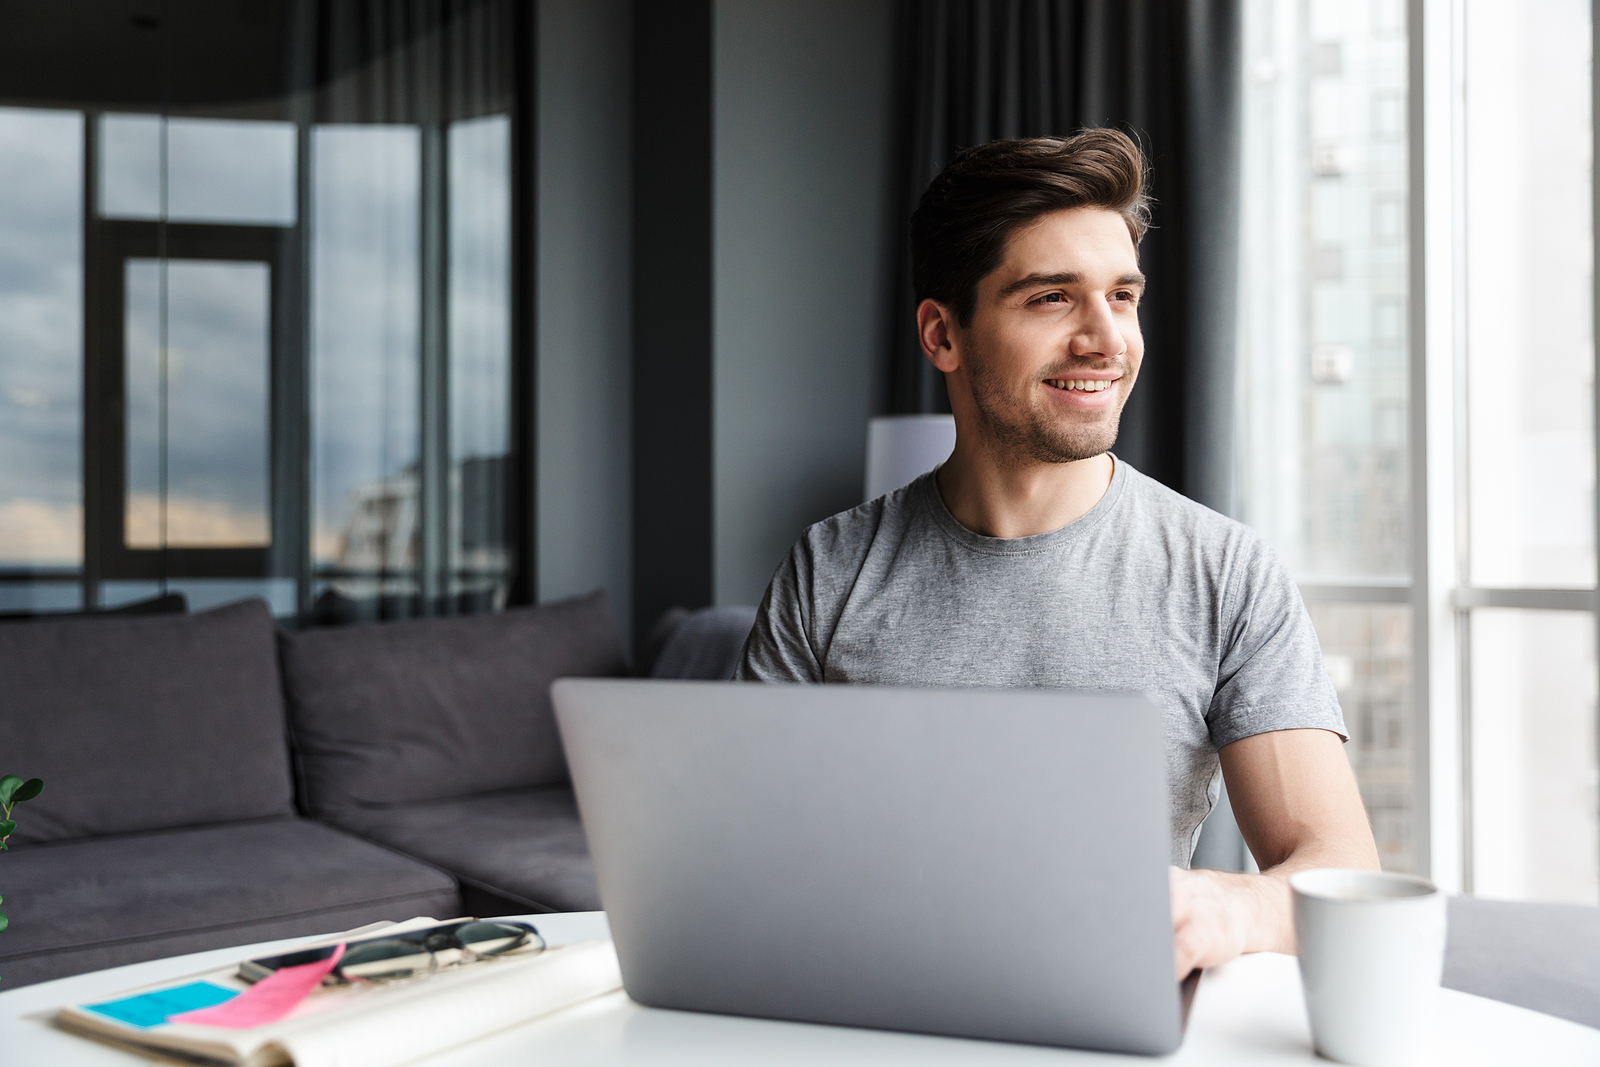 Image of attractive young white man looking out the window with a smile on his face, with a laptop in front of him.